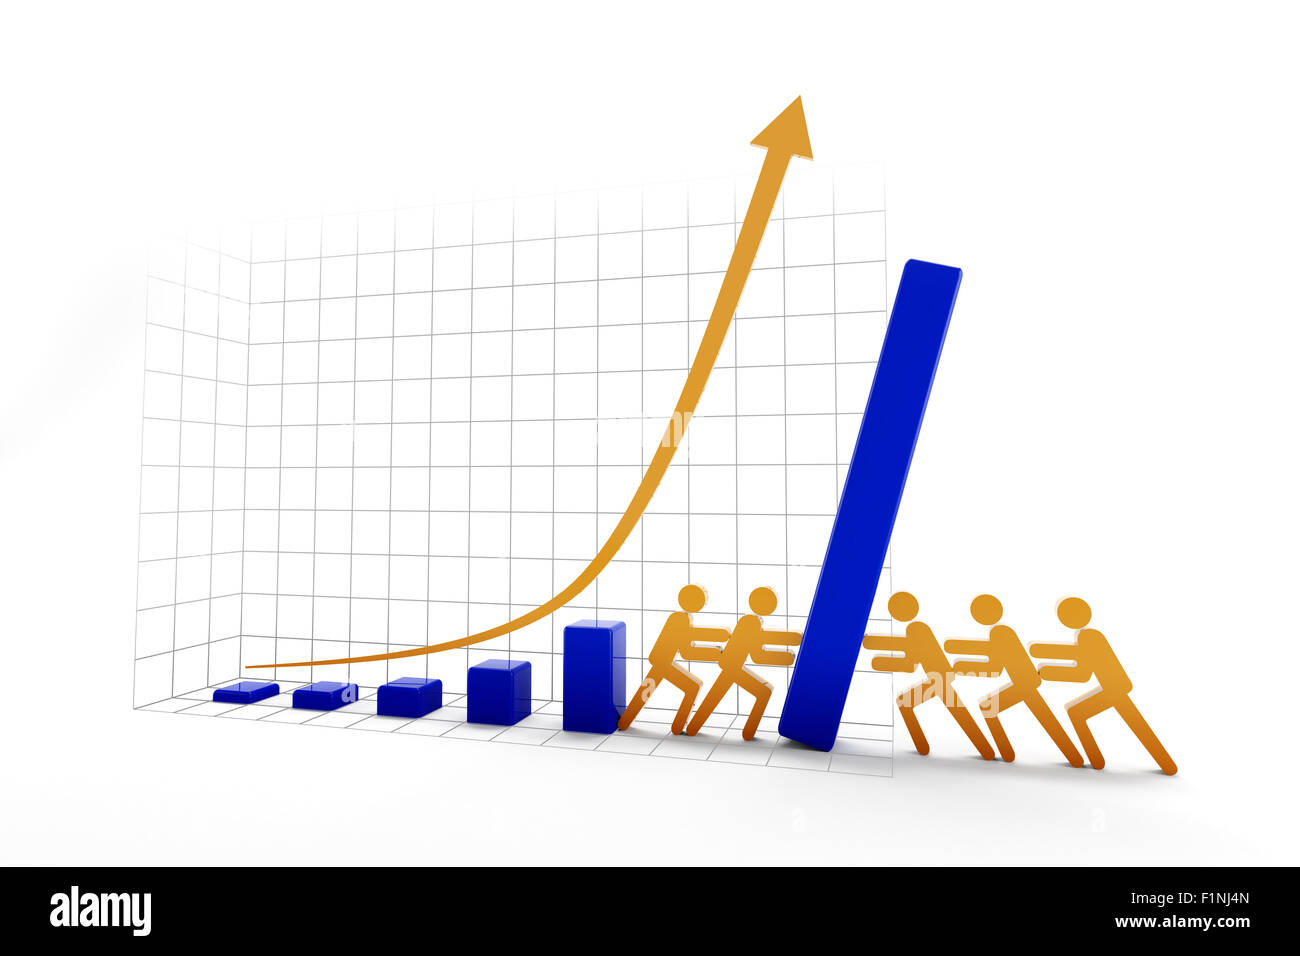 Rising vs falling trend - Stock Image